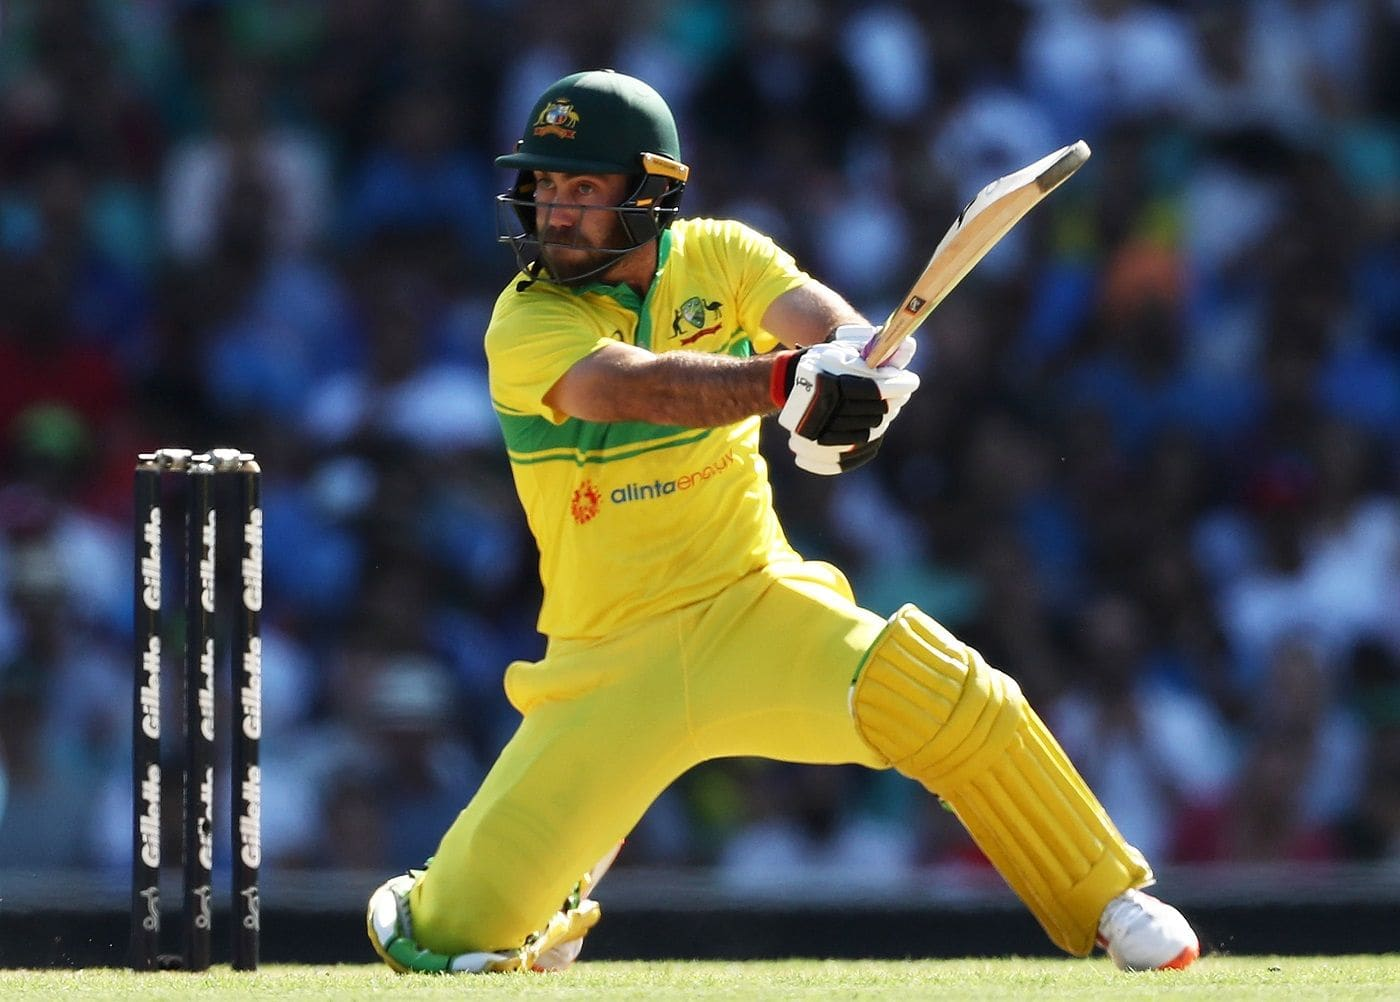 Batting at No 7 in ODIs is 'perfect position' for Glenn Maxwell: Justin Langer